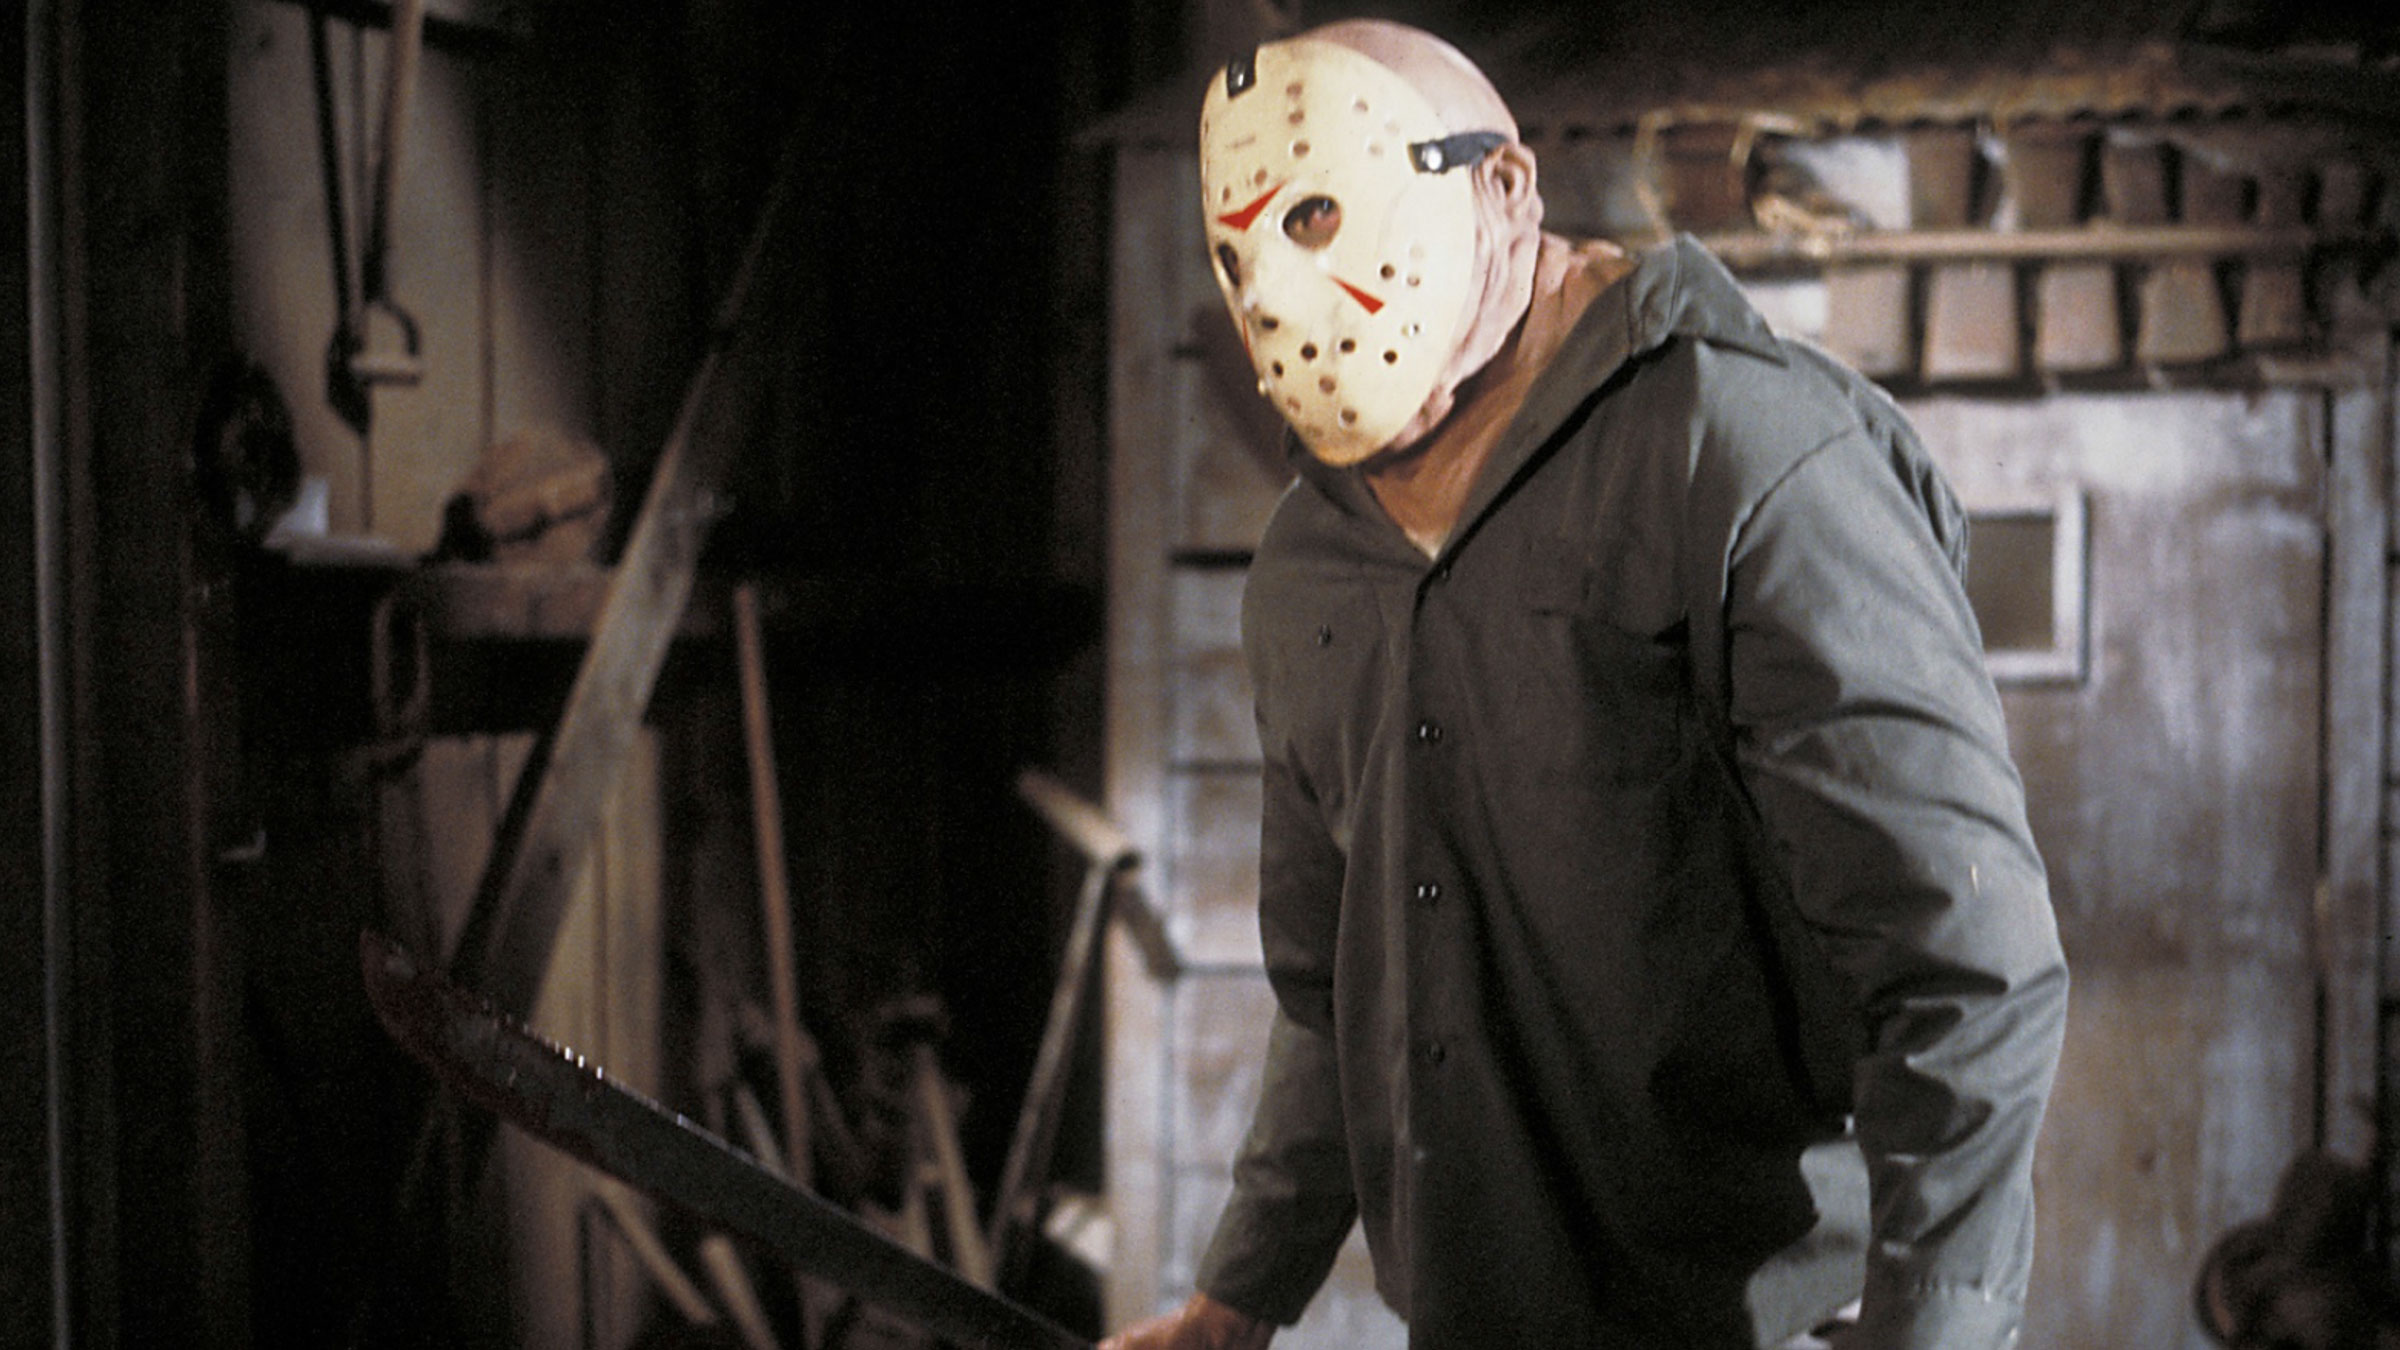 Friday the 13th: 8 Movie Collection (Blu-ray)